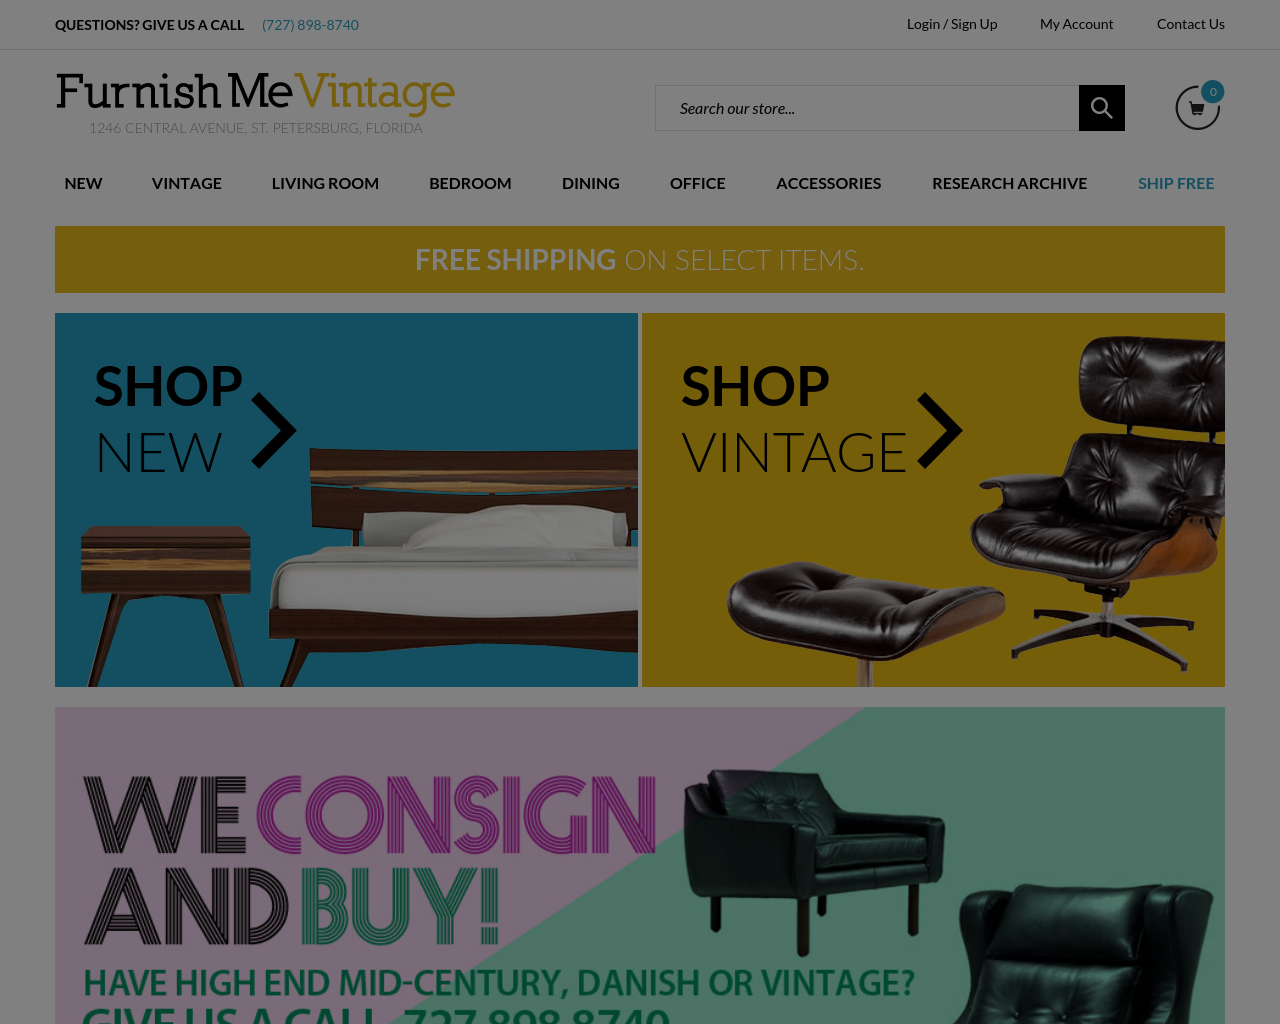 Furnish-Me-Vintage-Advertising-Reviews-Pricing